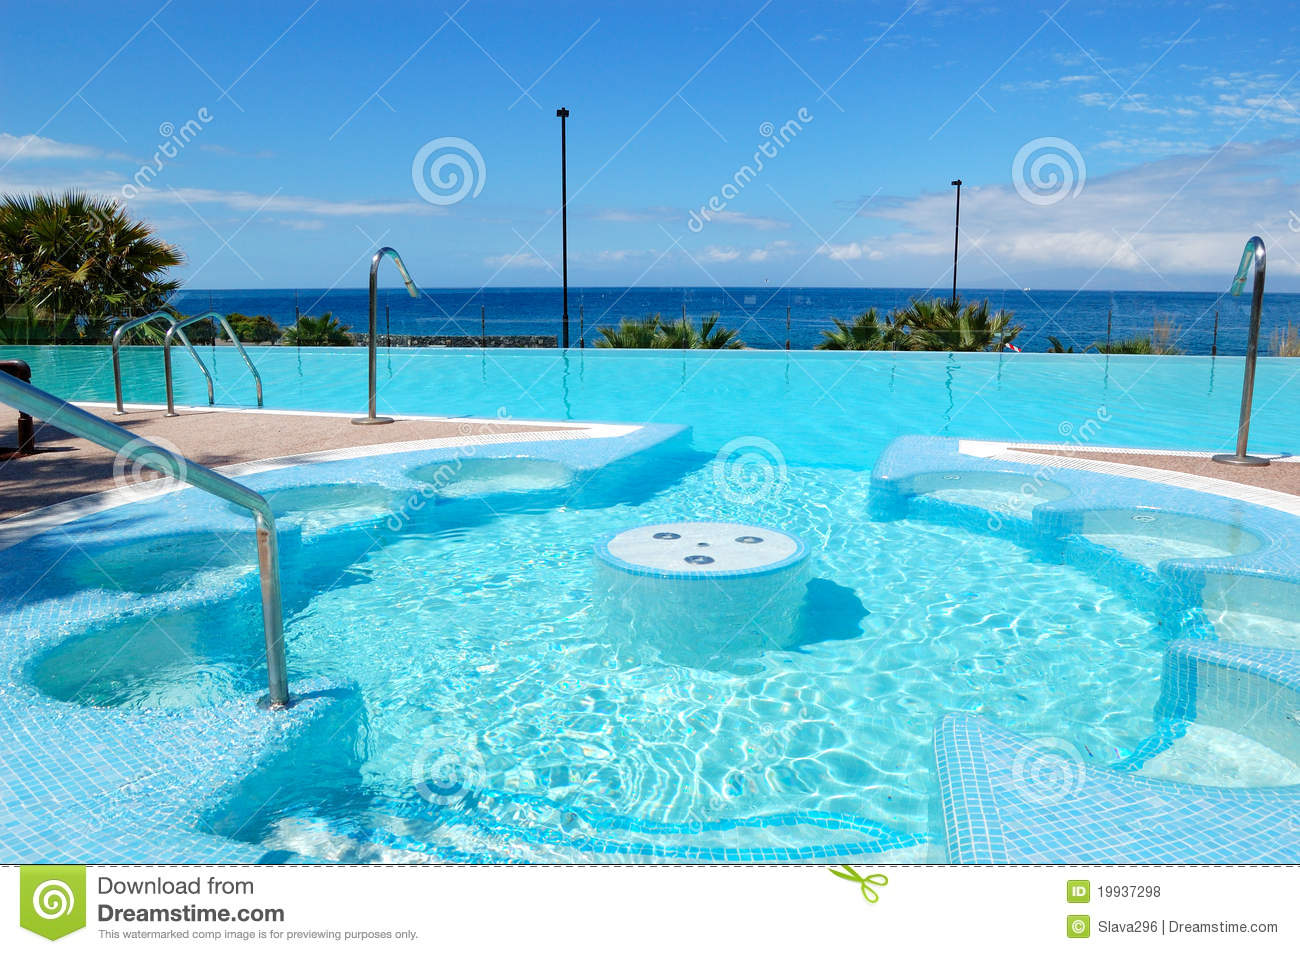 Jacuzzi Pool Hotel Swimming Pool With Jacuzzi At Luxury Hotel Stock Photo